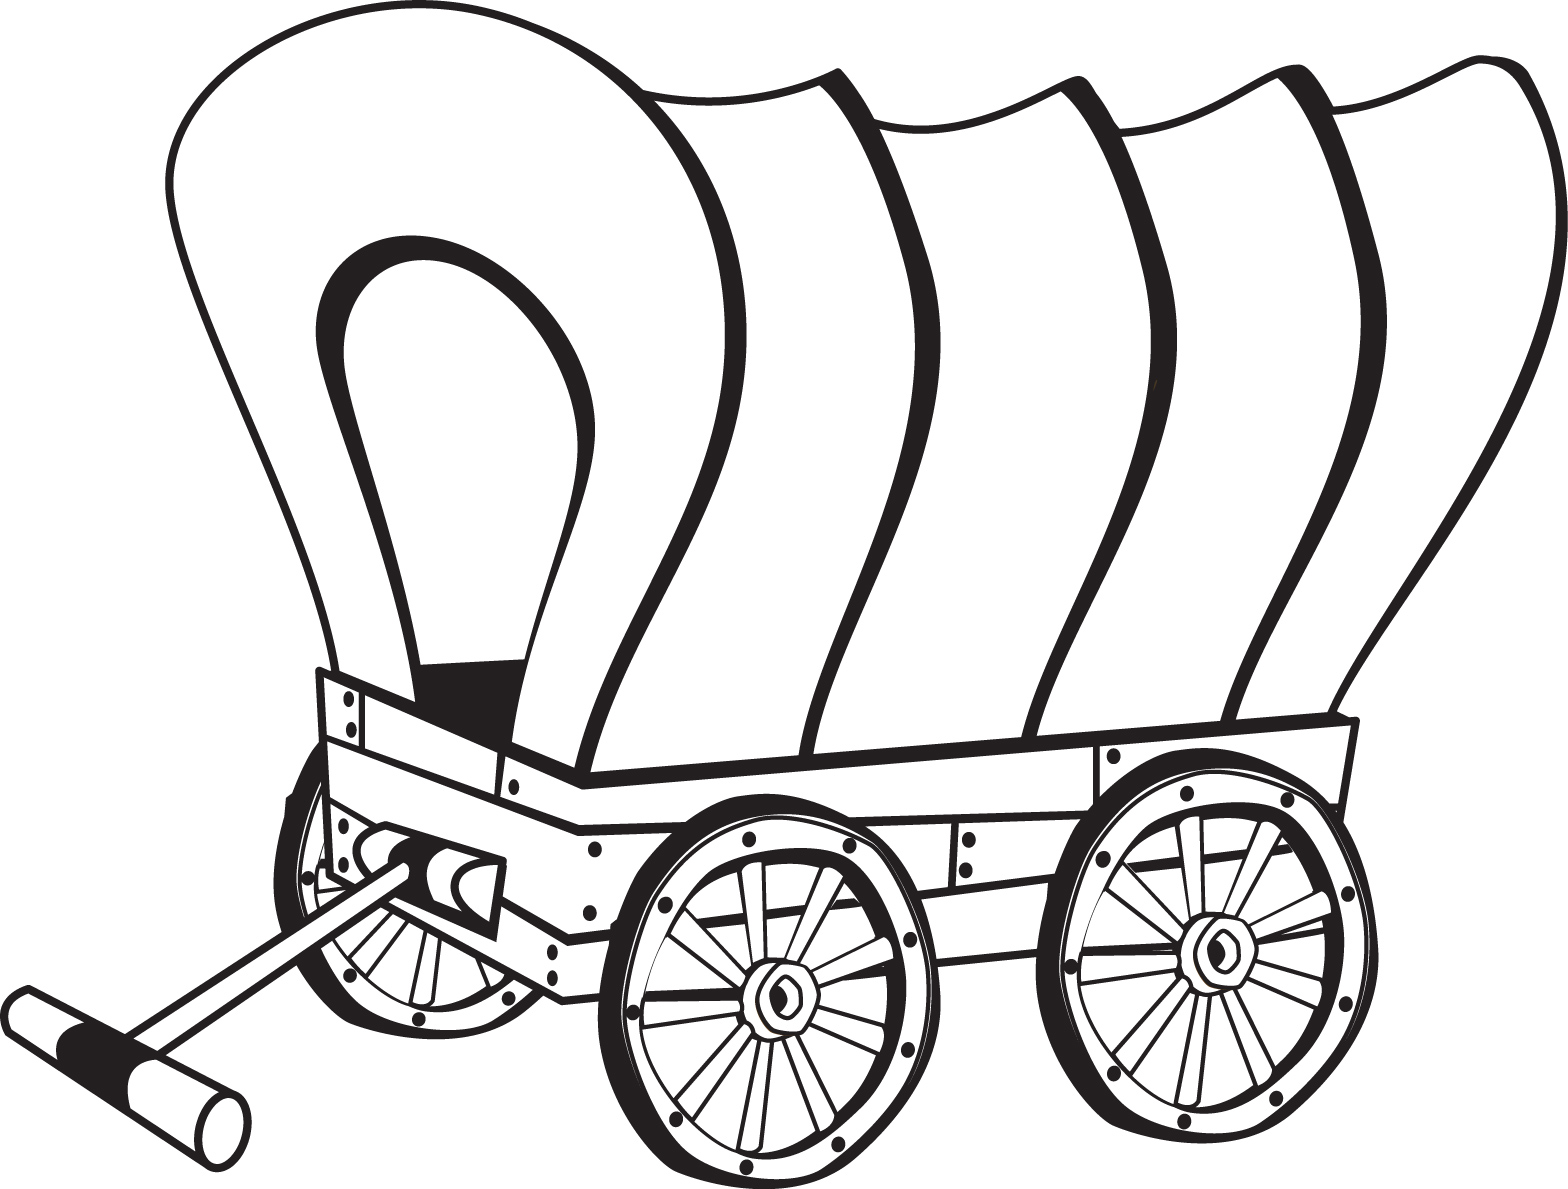 Download Or Print This Amazing Coloring Page: Covered Wagon